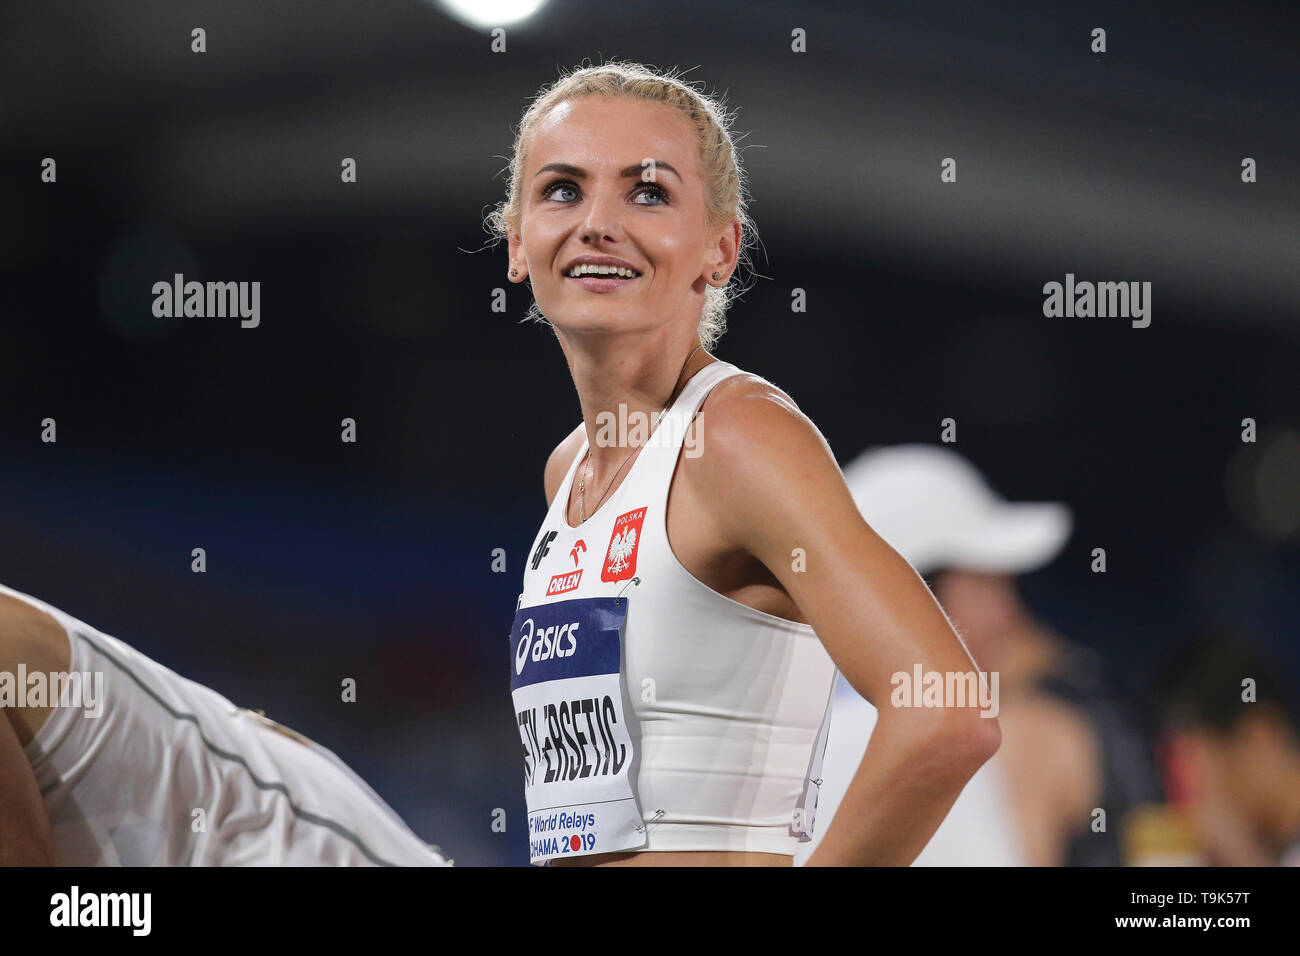 YOKOHAMA, JAPAN - MAY 10: Justyna Swiety-Ersetic of Polandafter the mixed 4x400m relay during Day 1 of the 2019 IAAF World Relay Championships at the Nissan Stadium on Saturday May 11, 2019 in Yokohama, Japan. (Photo by Roger Sedres for the IAAF) - Stock Image